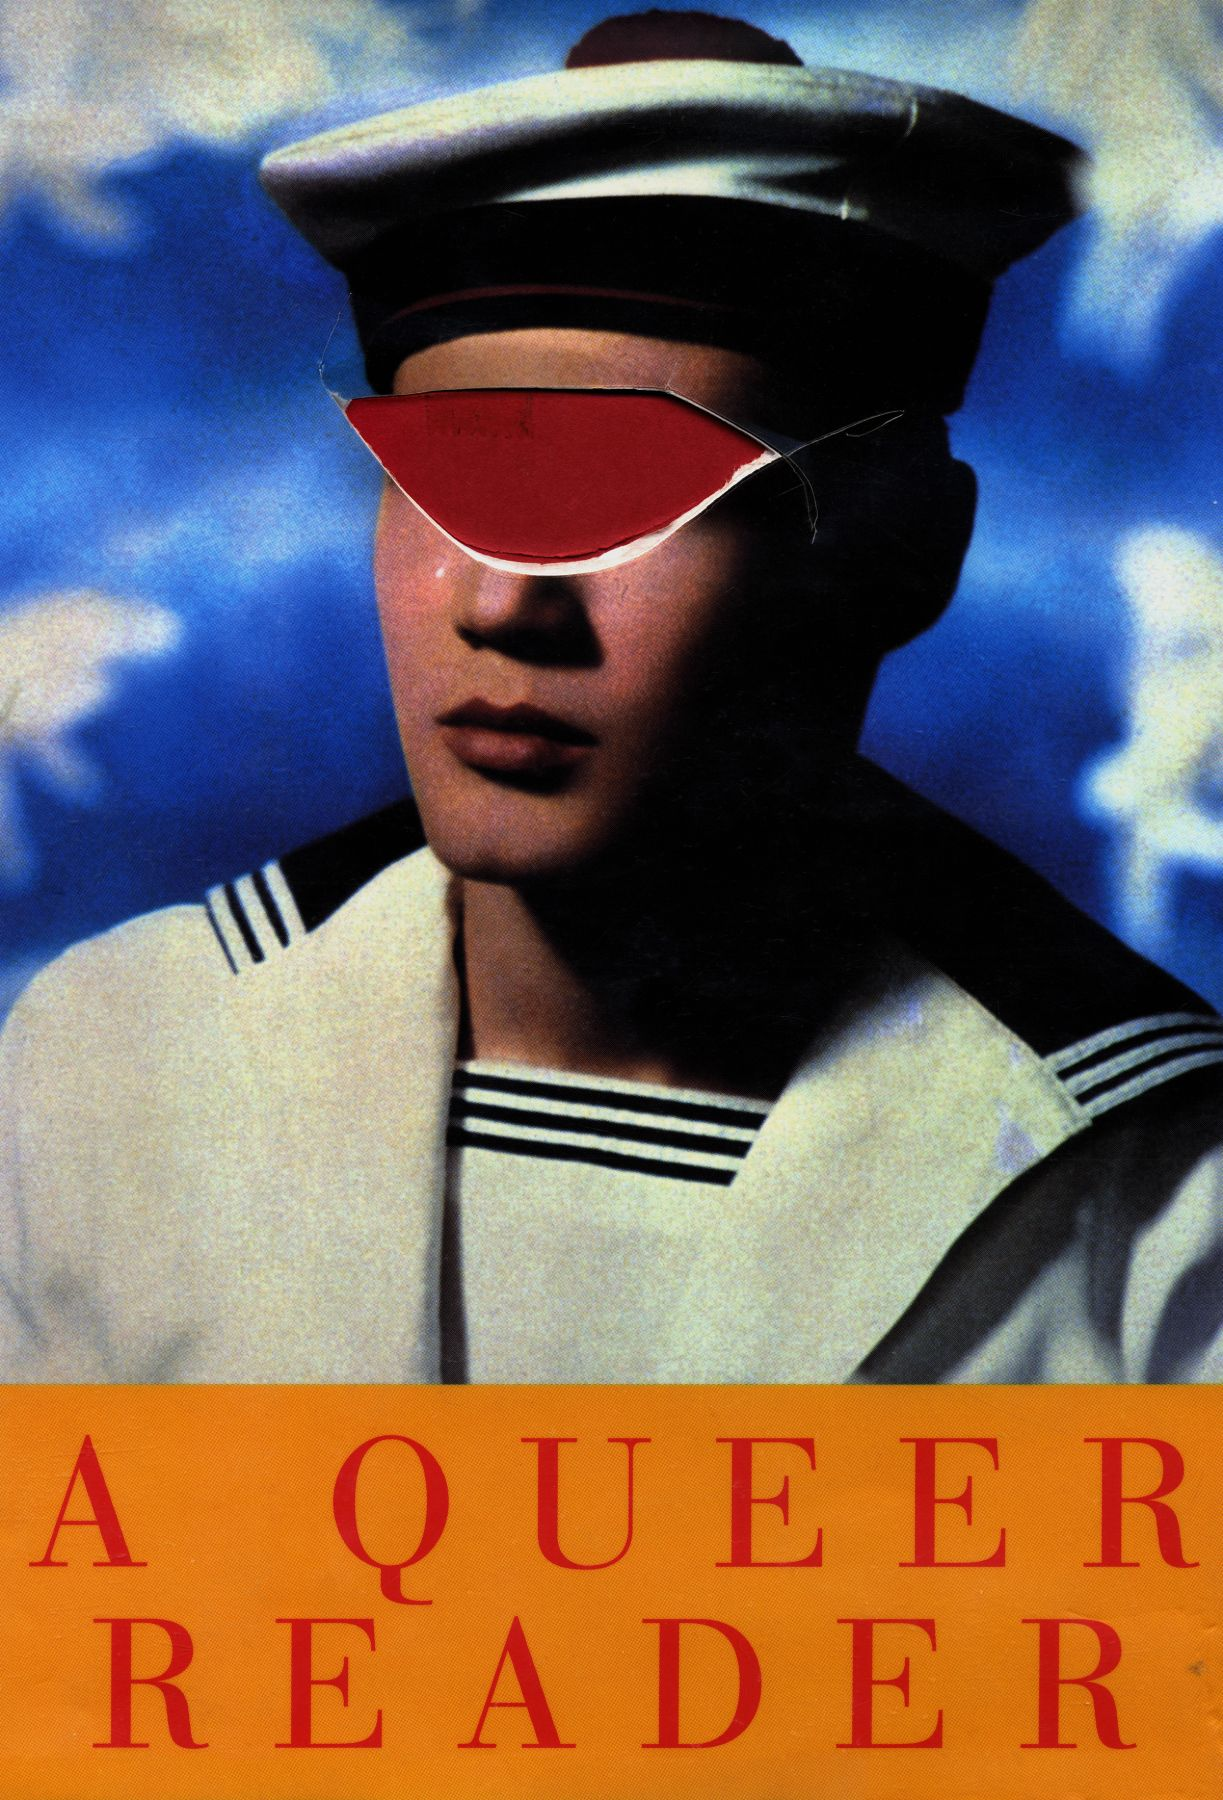 A Queer Reader, 2010, Archival inkjet print on Museo Silver Rag paper